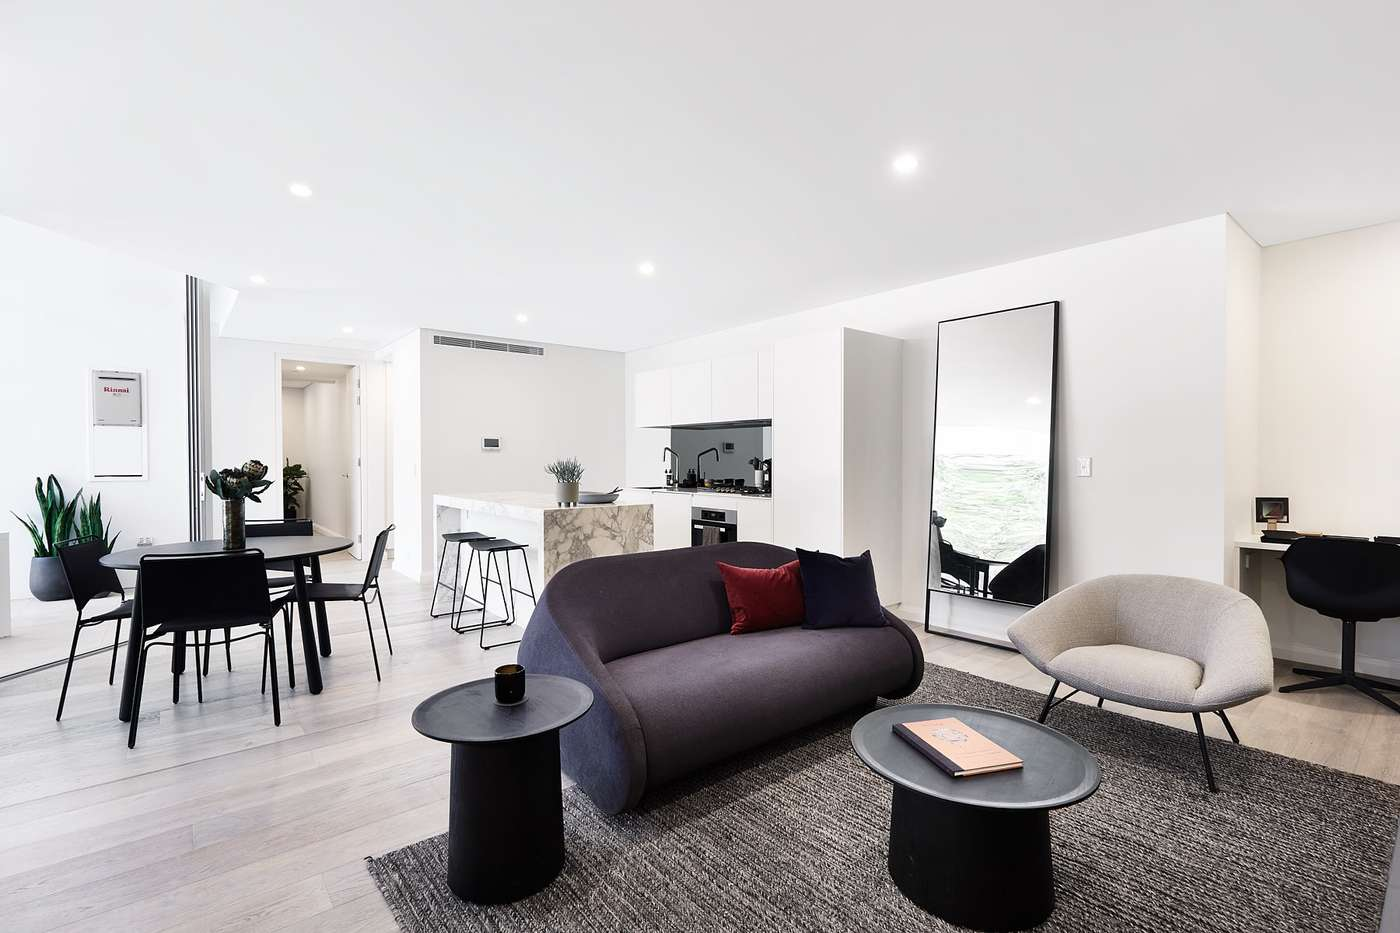 Main view of Homely apartment listing, 2/425 Bourke St, Surry Hills, NSW 2010